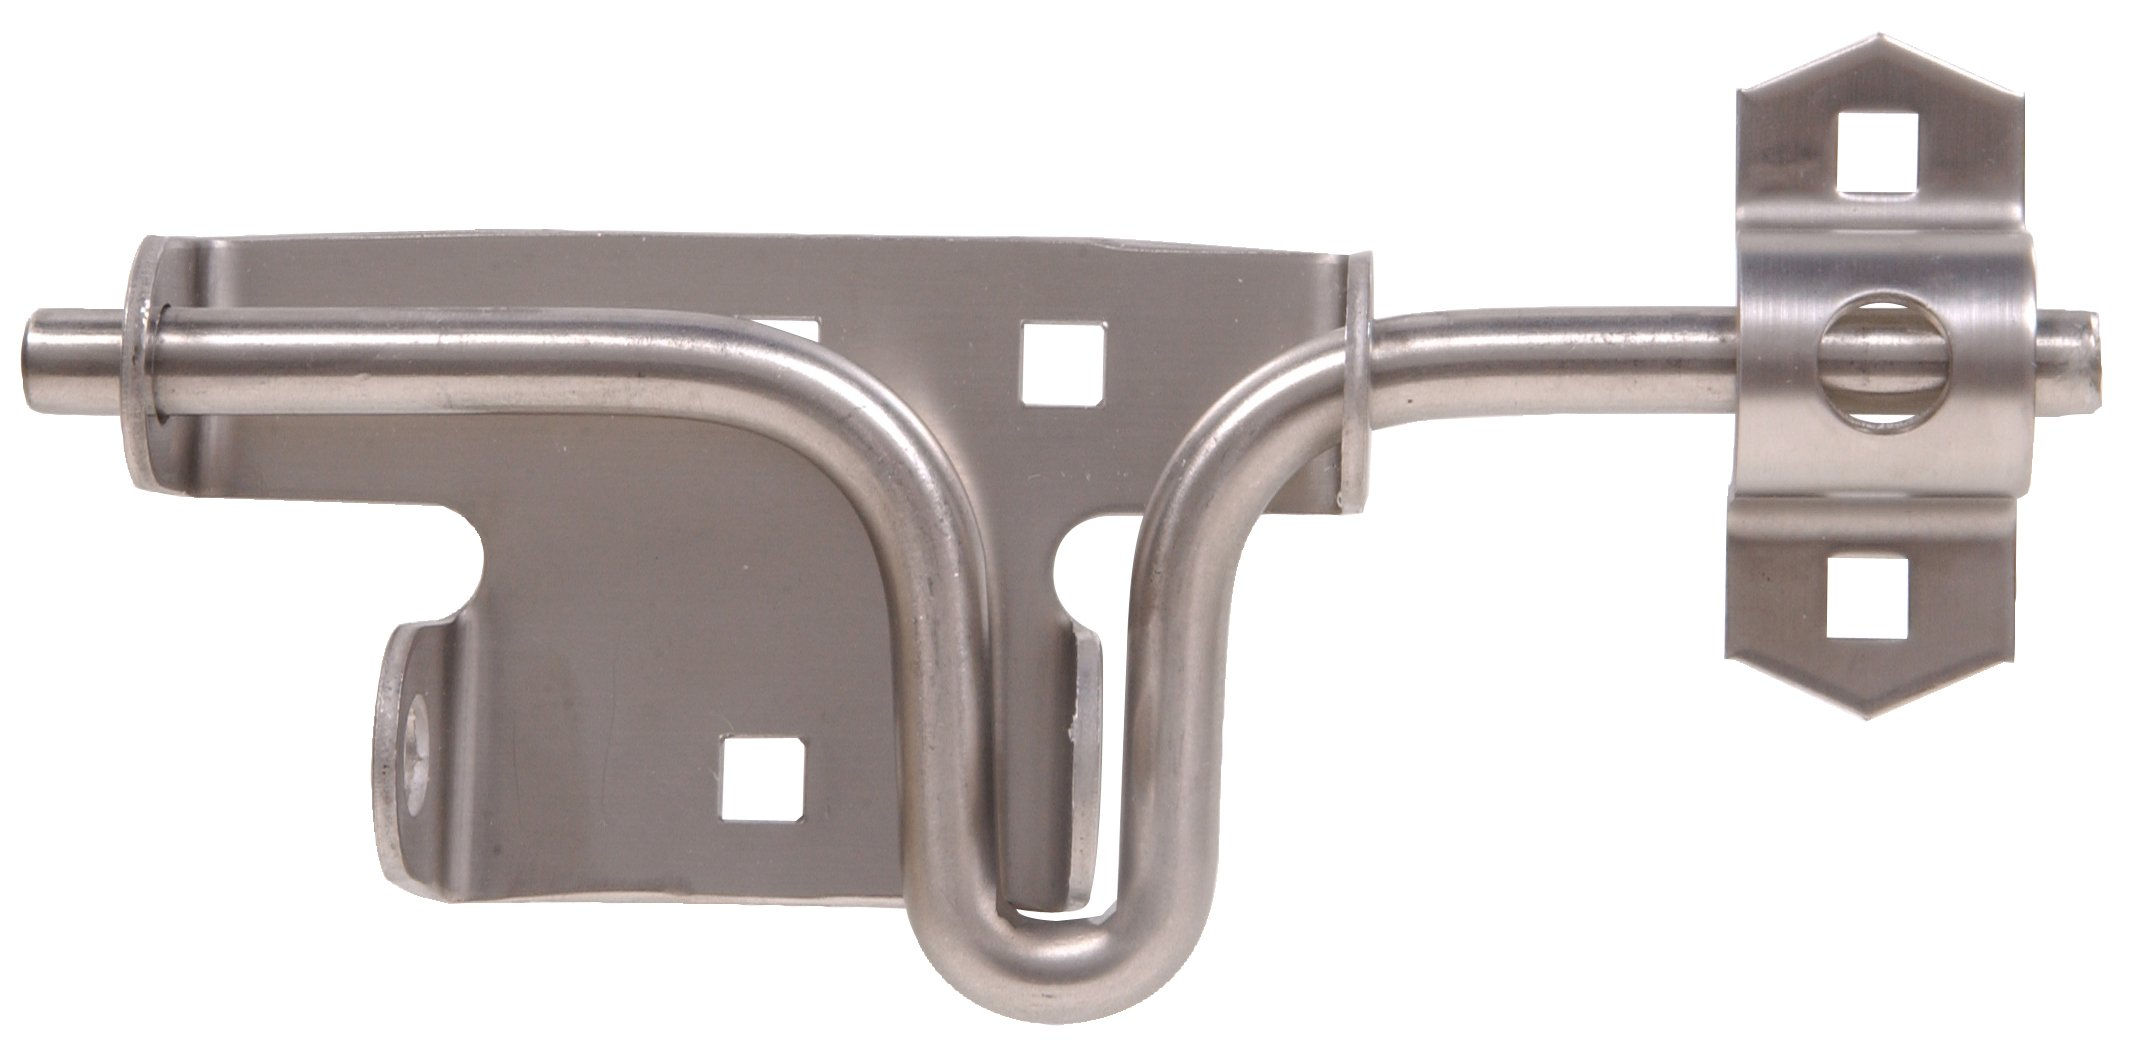 The Hillman Group 851840 Slide Action Gate Latch - Stainless Steel 1-Pack by Hillman